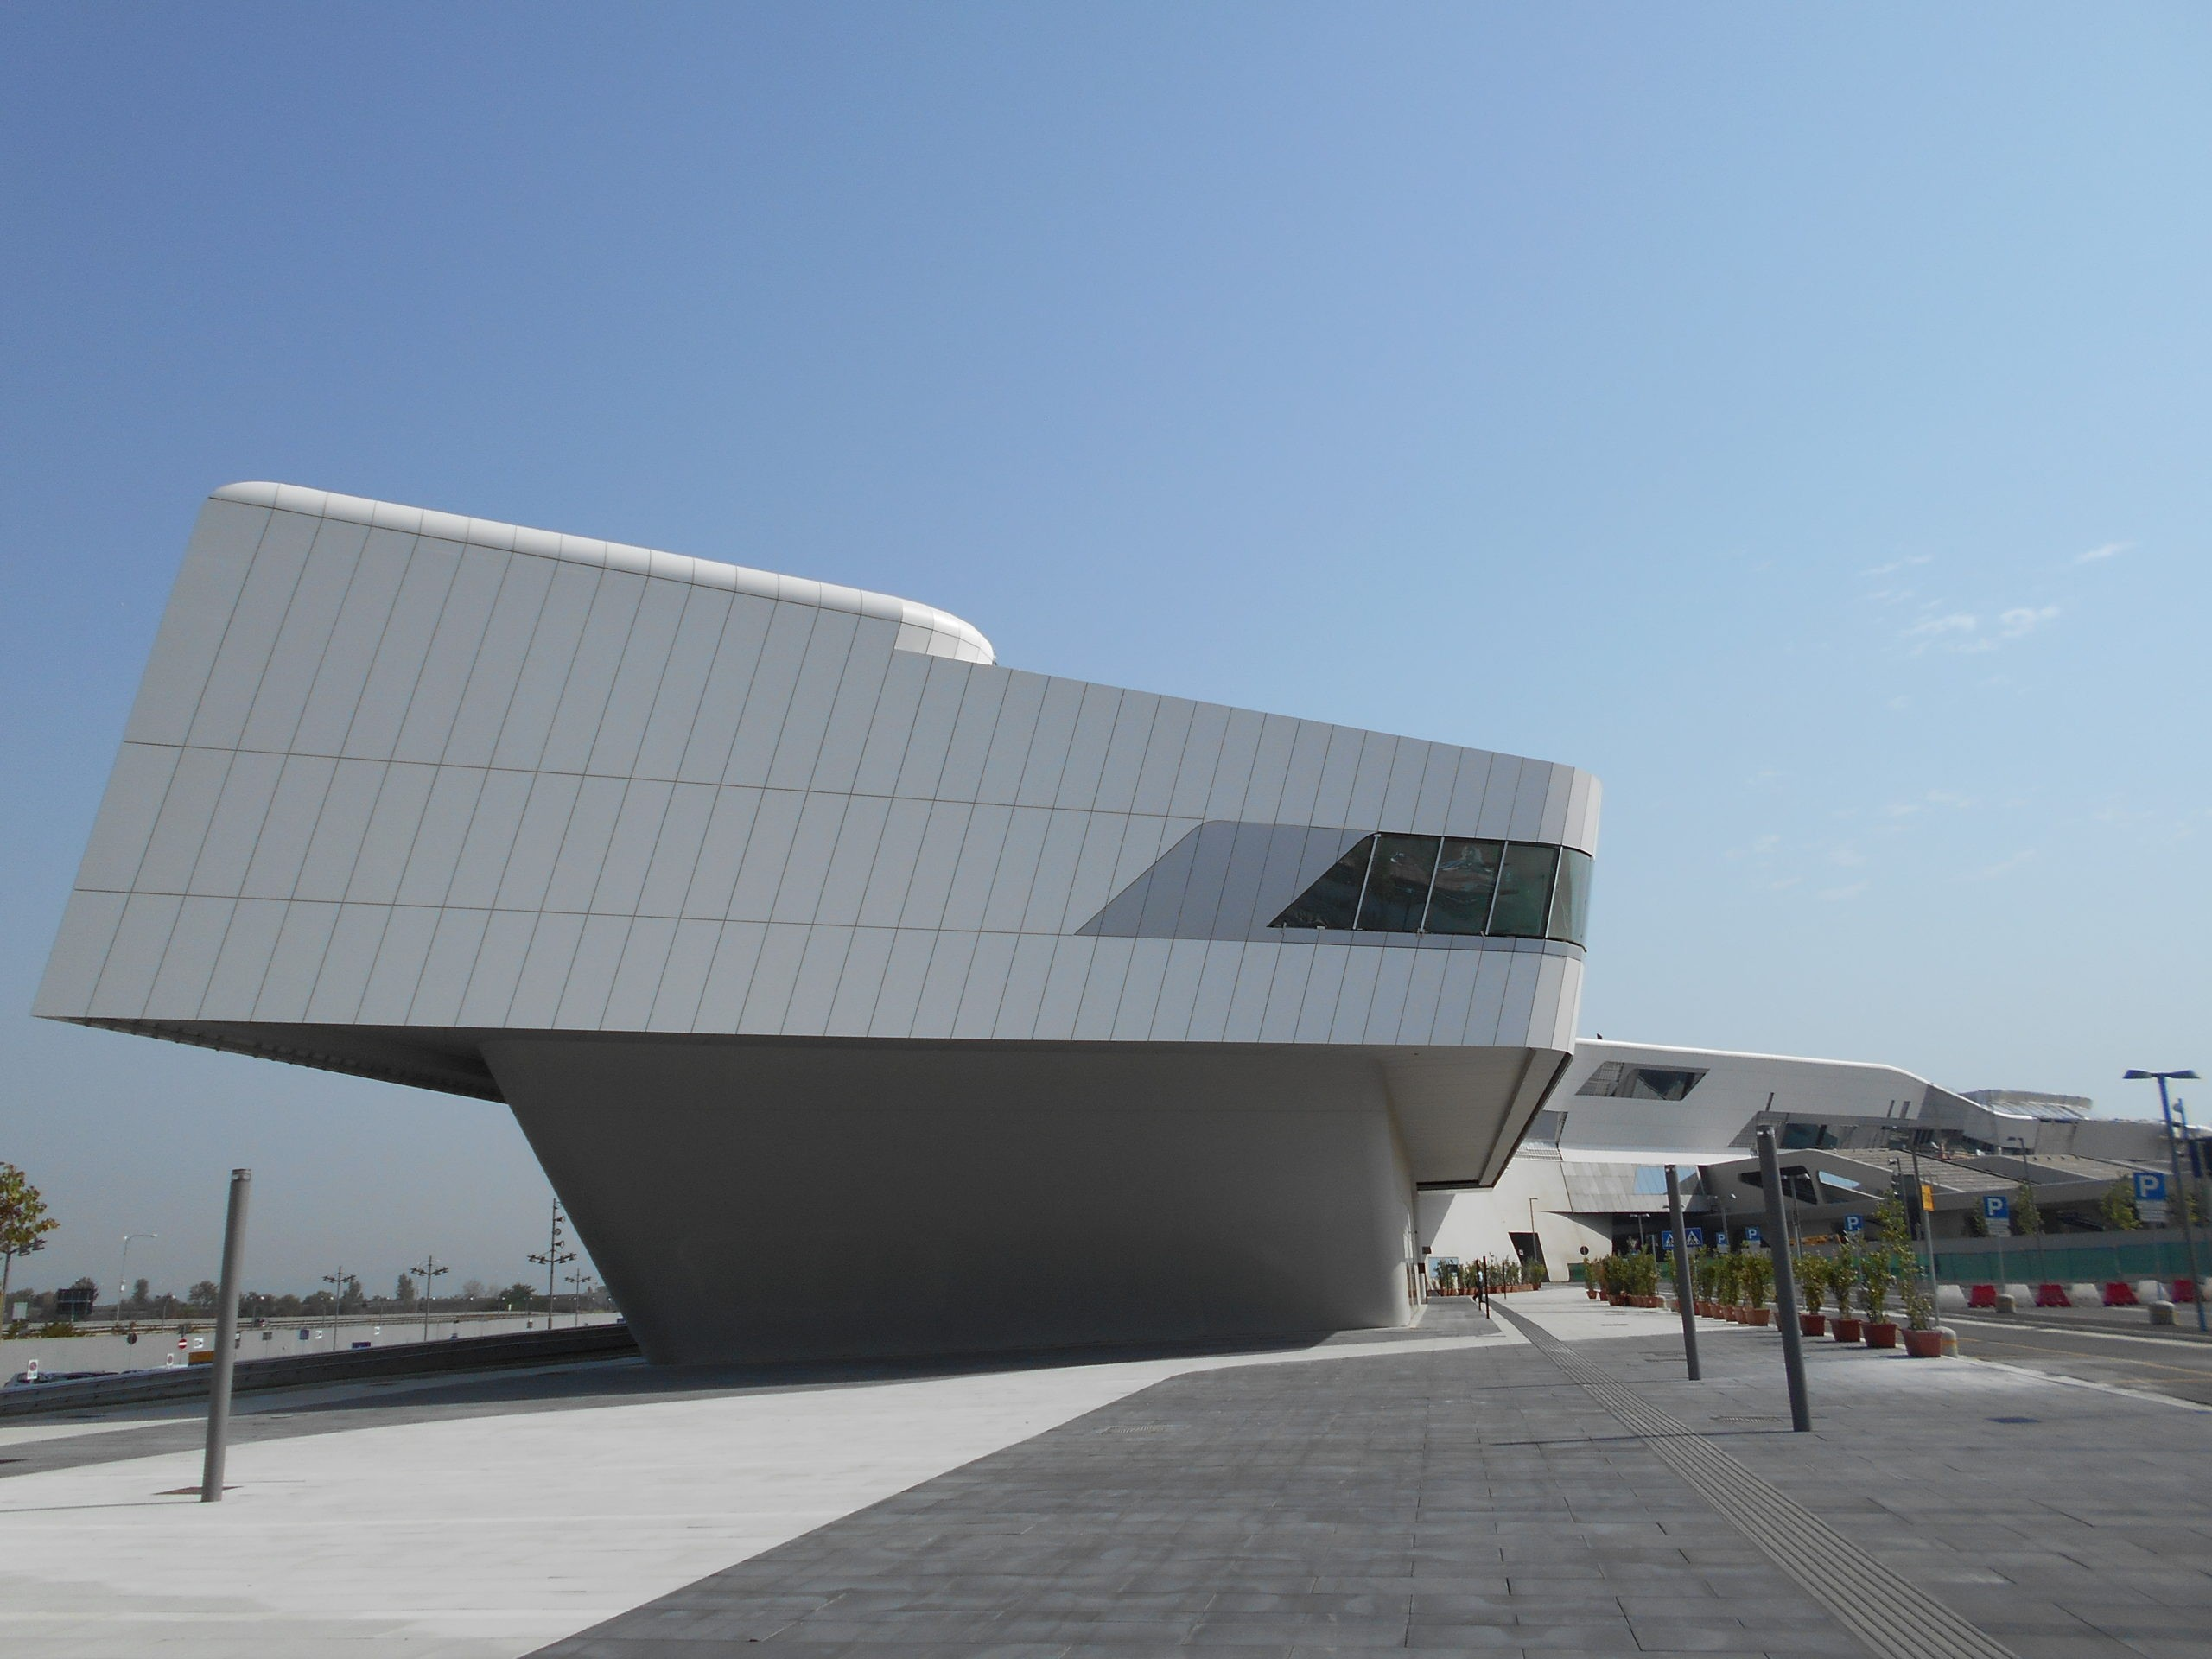 The new Naples-Afragola station, designed by Zaha Hadid